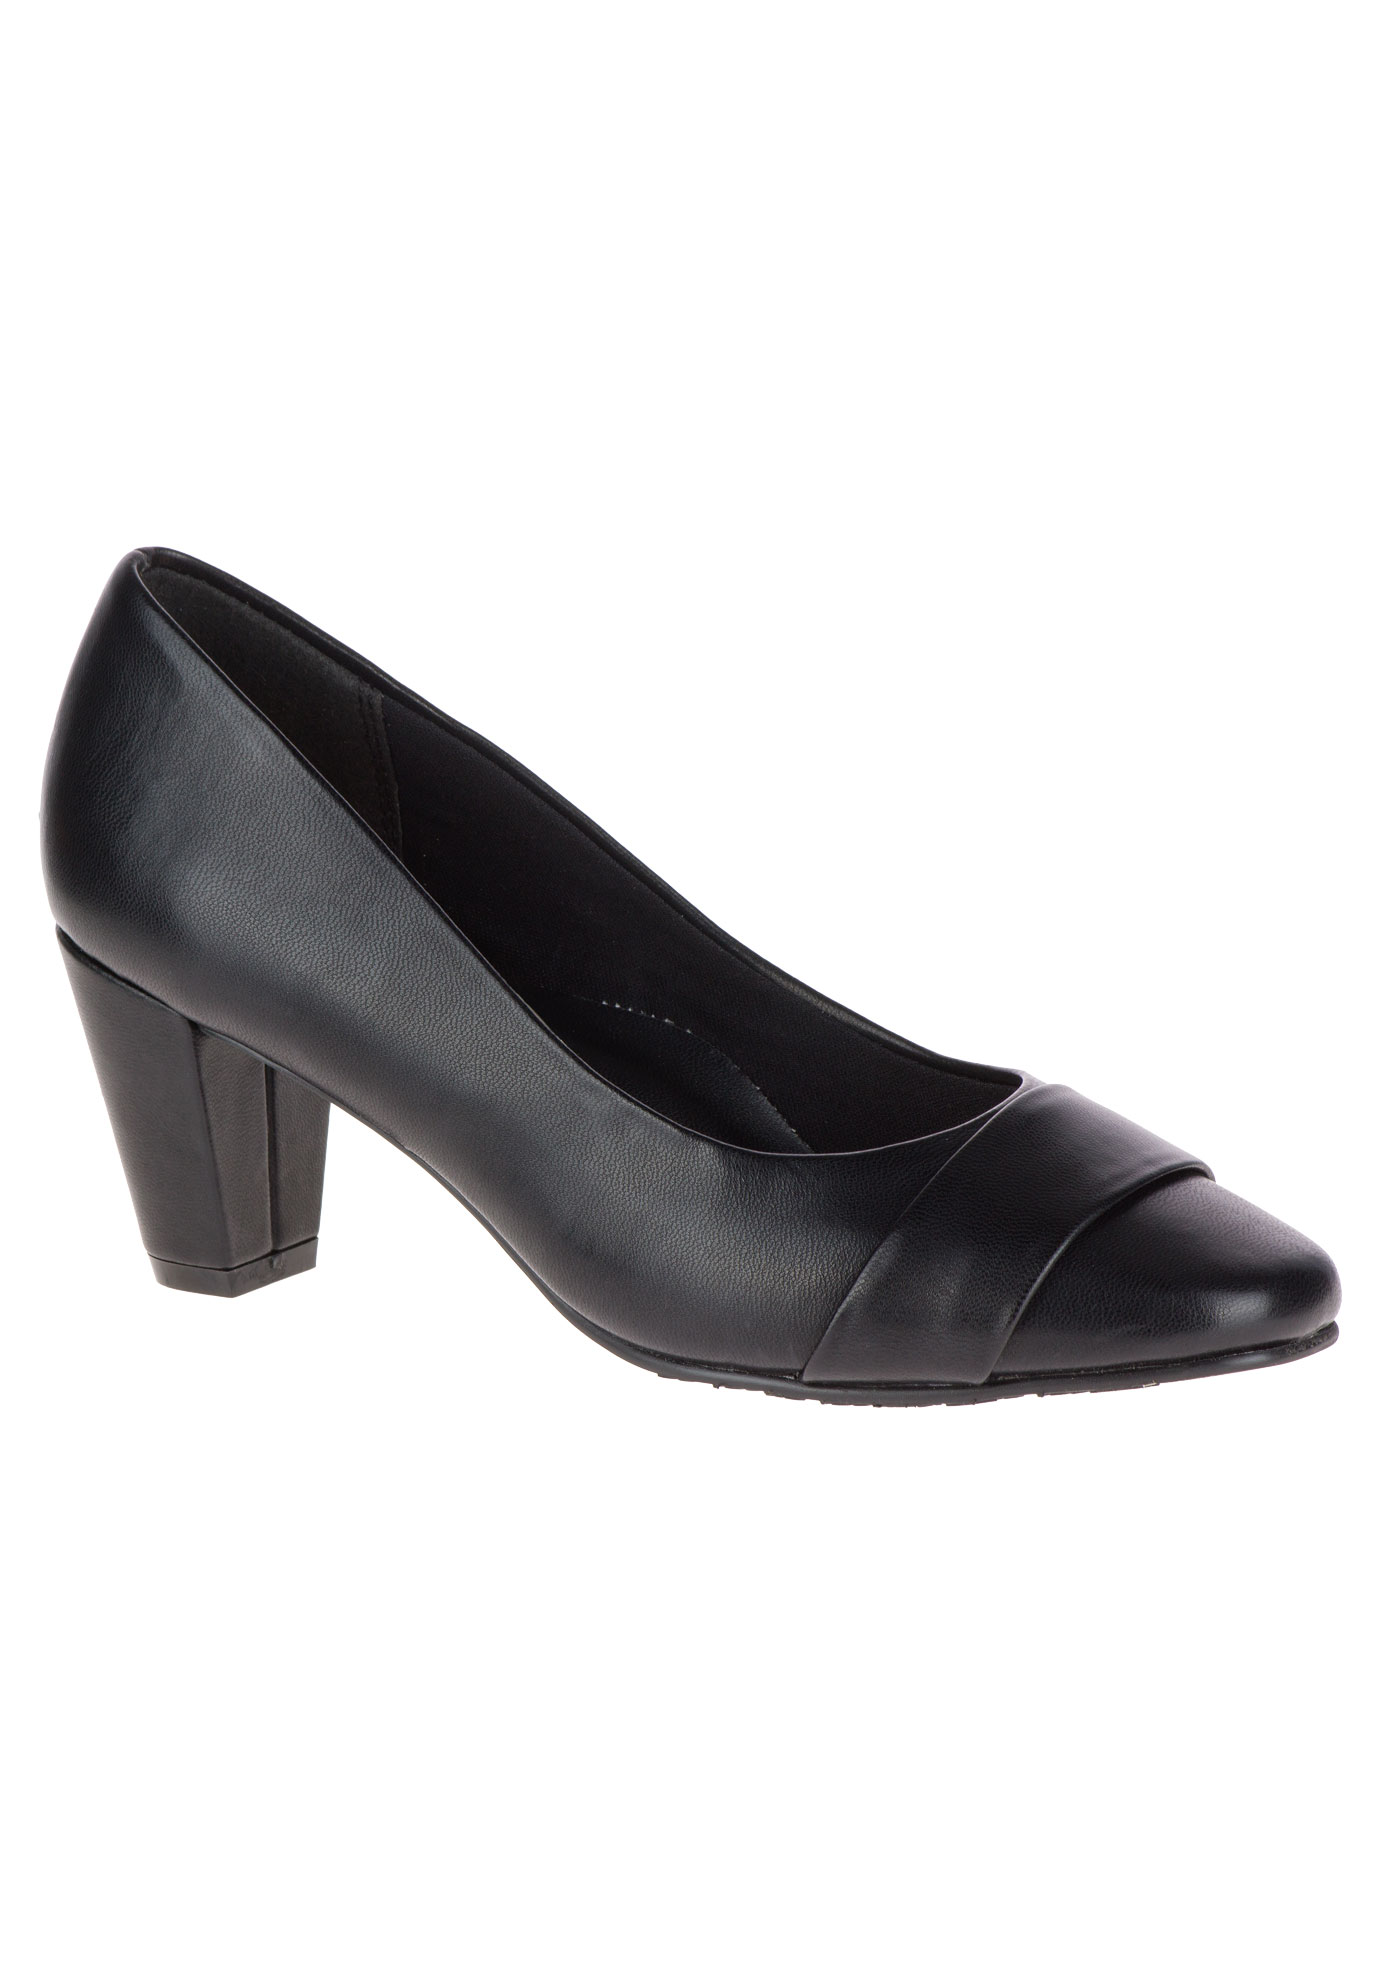 Mabry Pumps by Soft Style, BLACK, hi-res